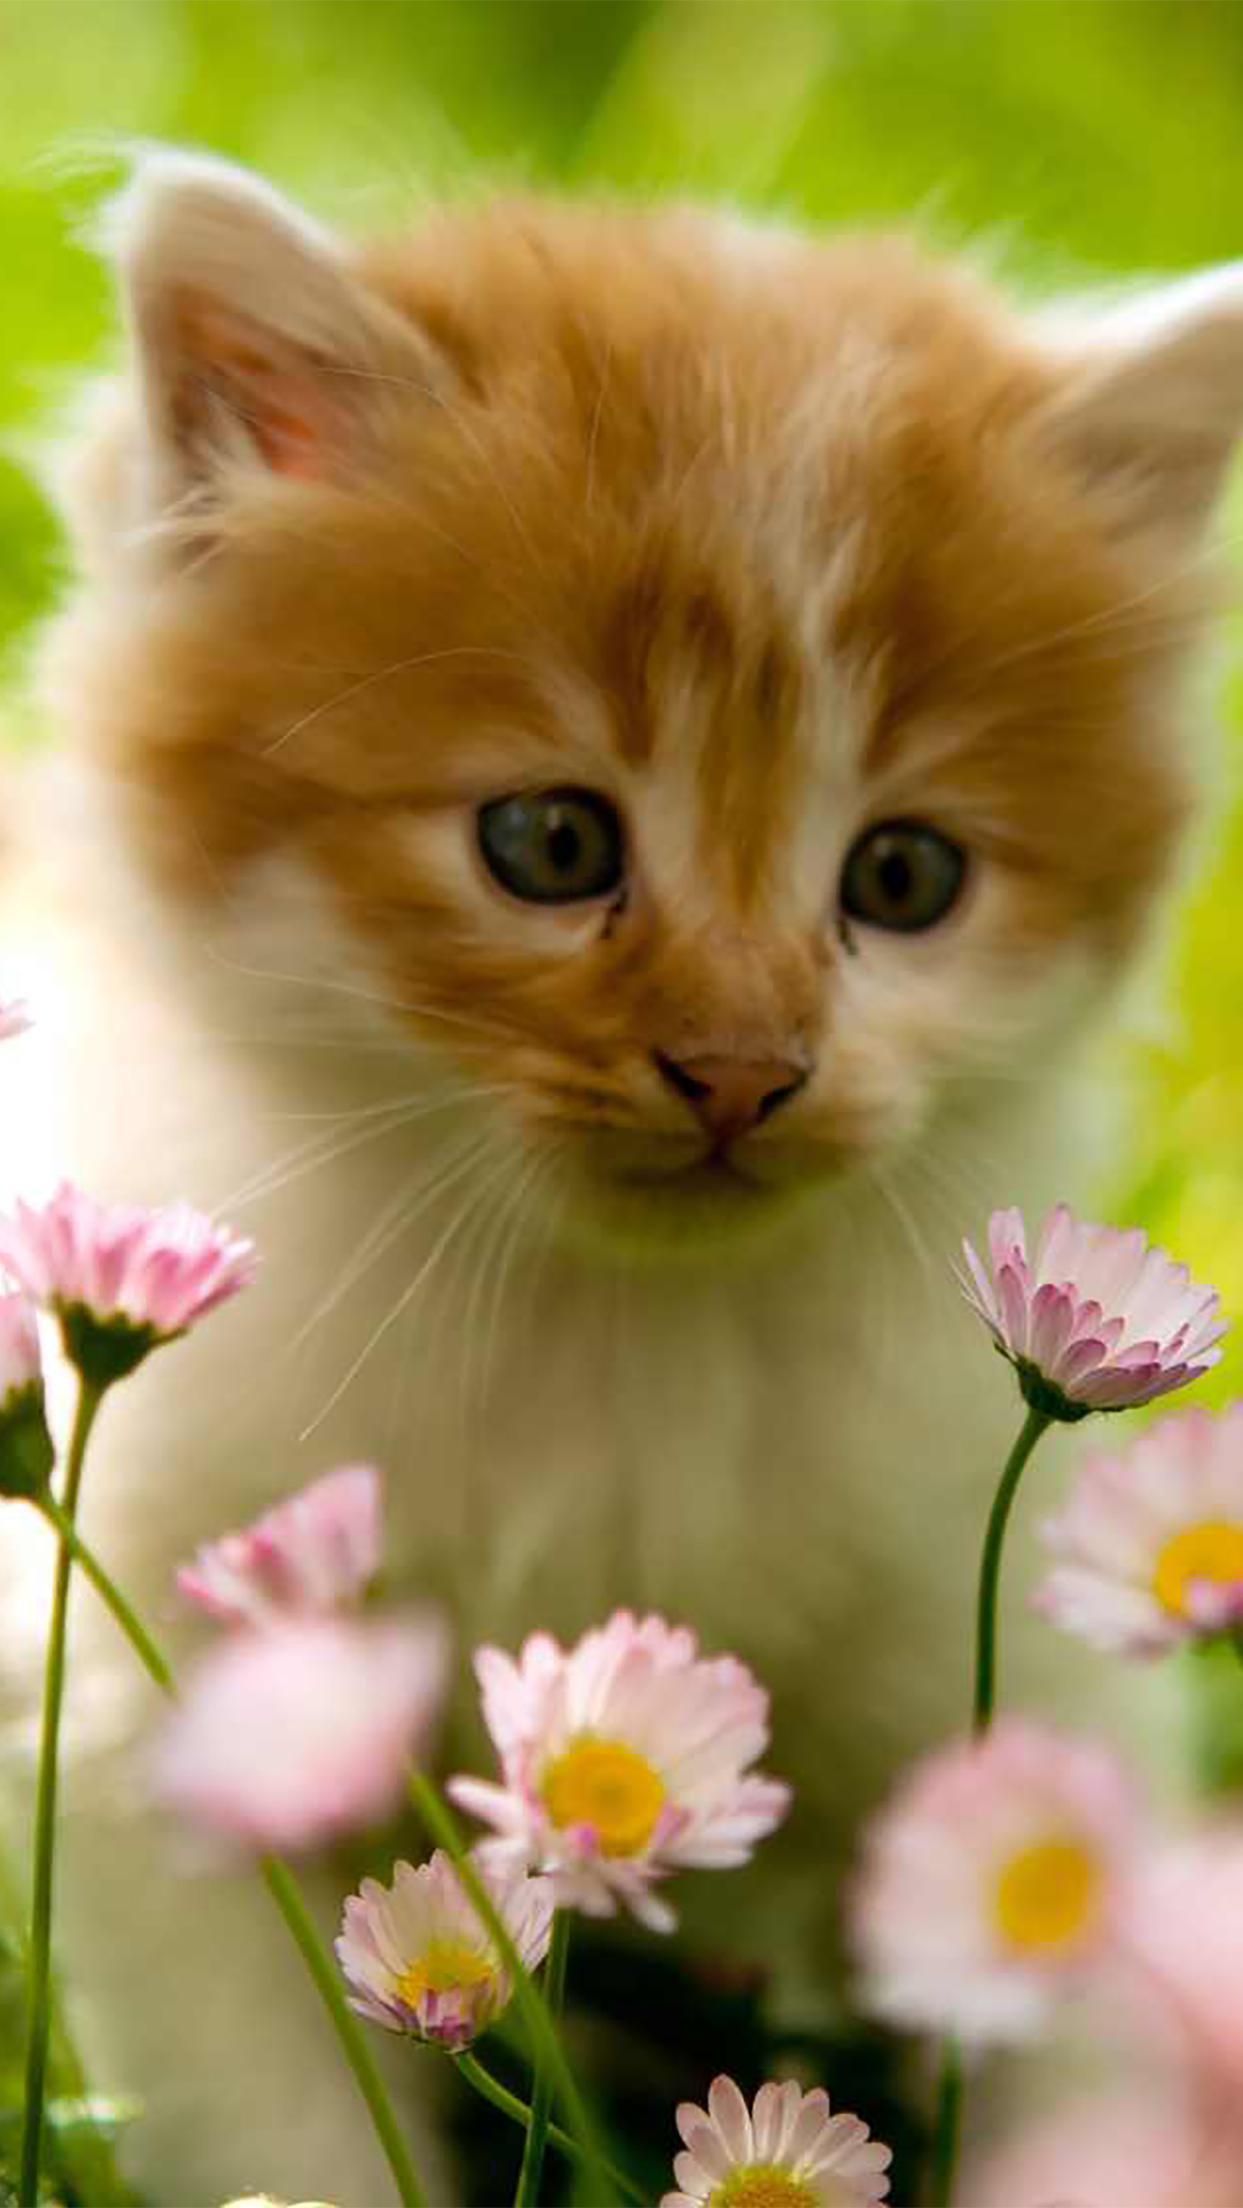 Cat Cat in Flowers 3Wallpapers iPhone Parallax Cat : Cat in Flowers